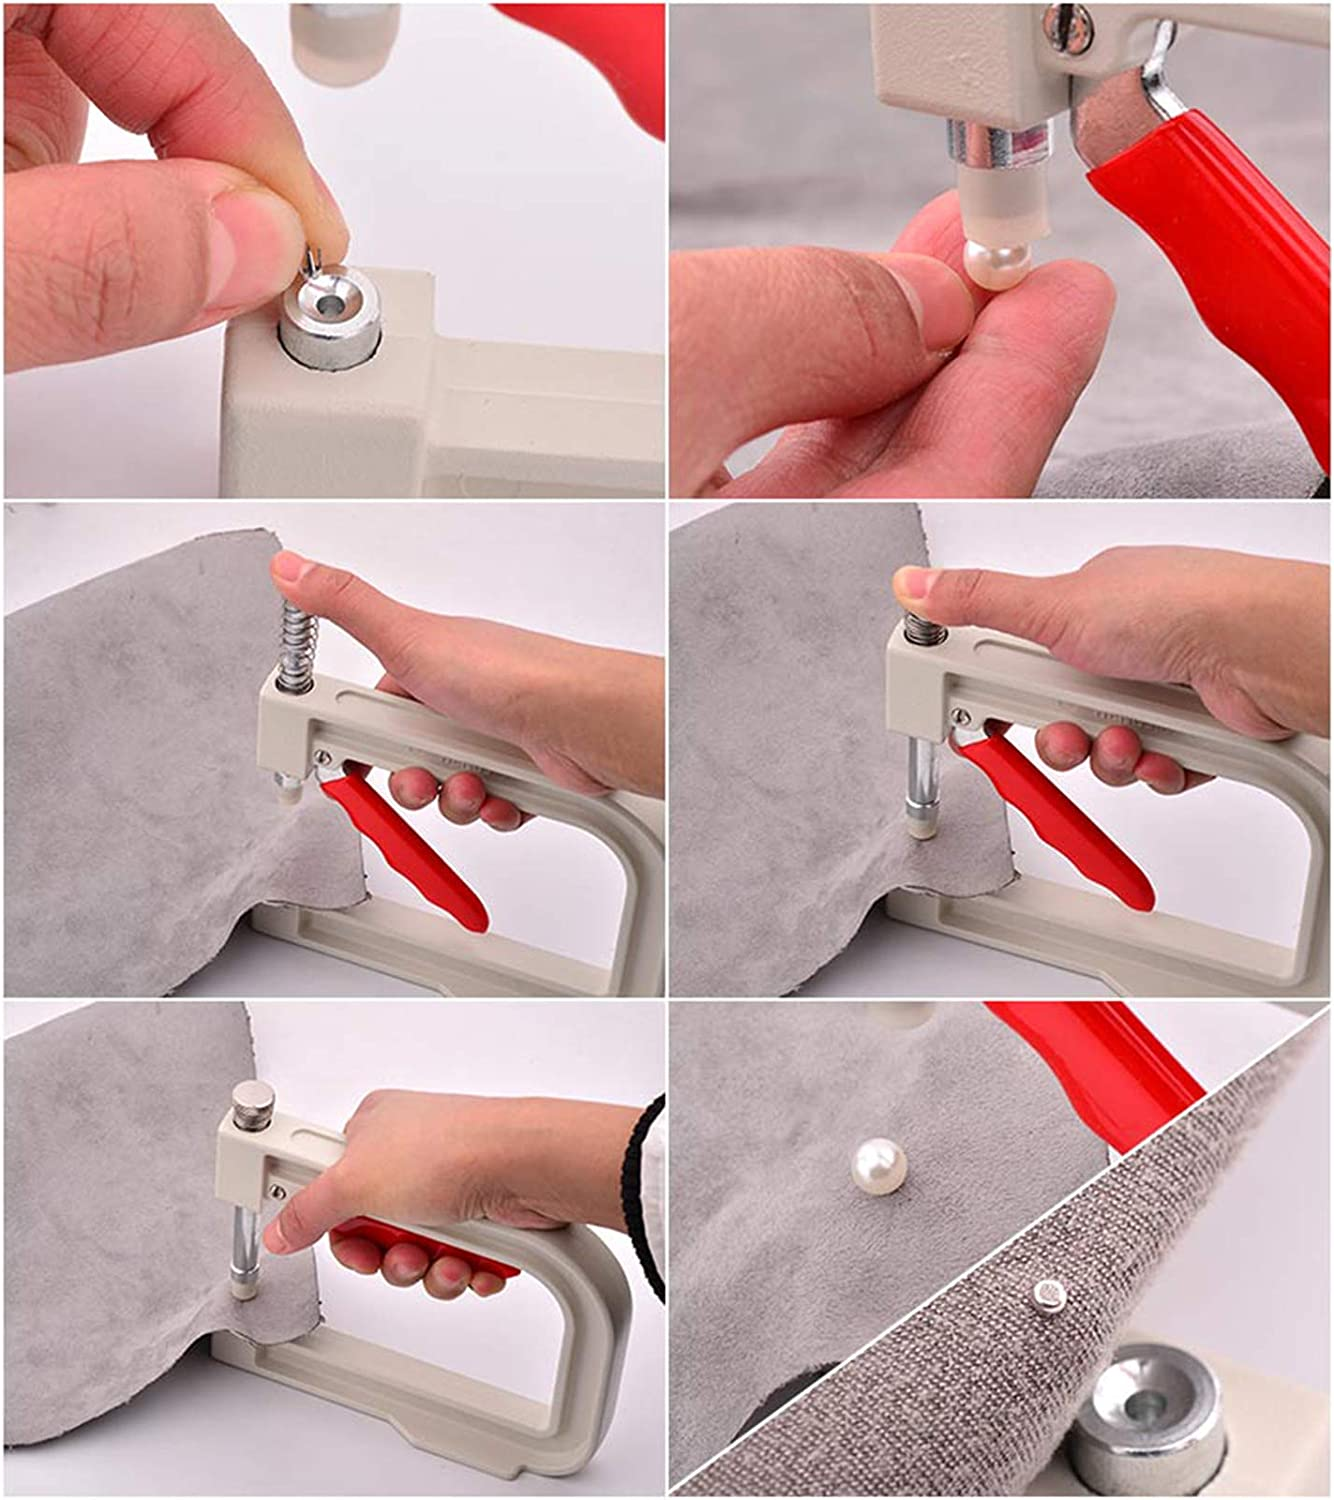 Pearl Setting Machine Nailed Bead Machine DIY Handmade Beads Rivet Fixing Machine with 150 Pcs Imitation Pearl Acrylic Beads in 5 Size Rivet Buttons and Tweezer for Clothes Bags Skirts DIY Crafts